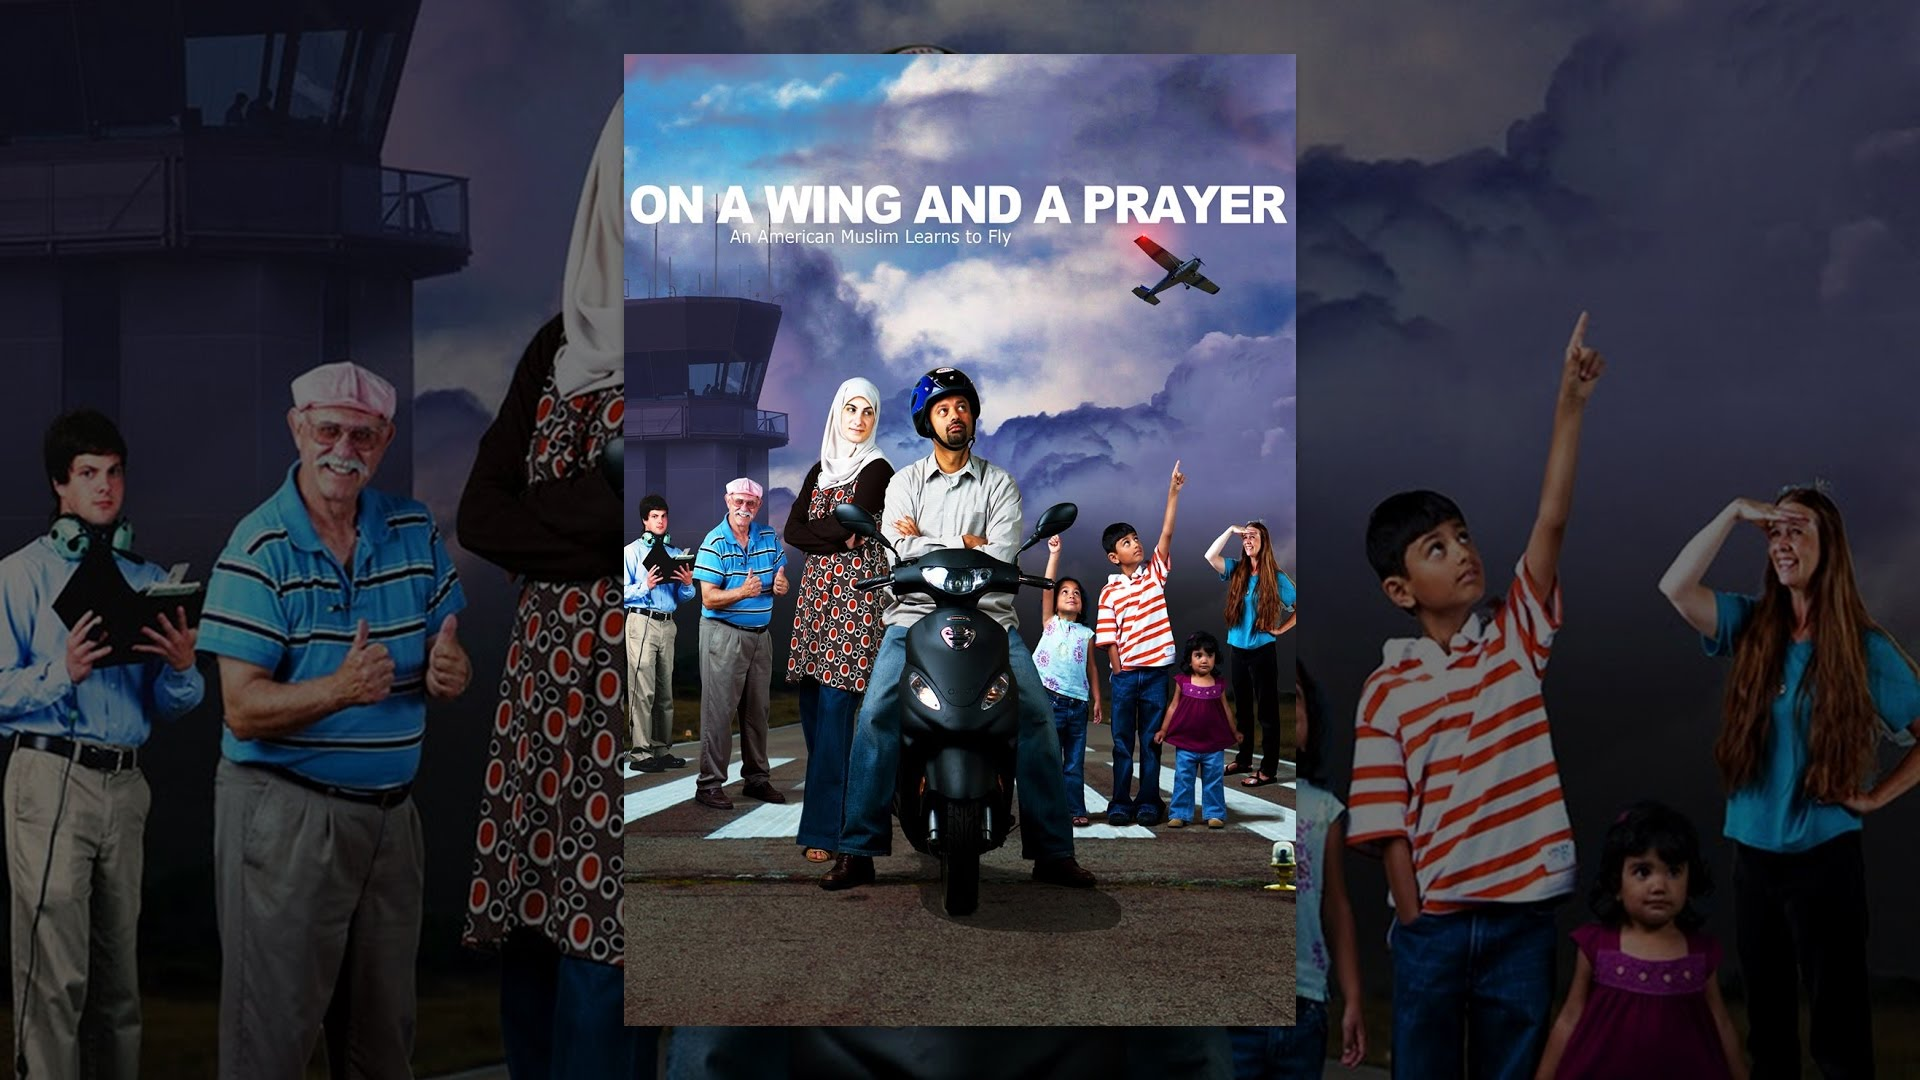 On a Wing and a Prayer: An American Muslim Learns to Fly